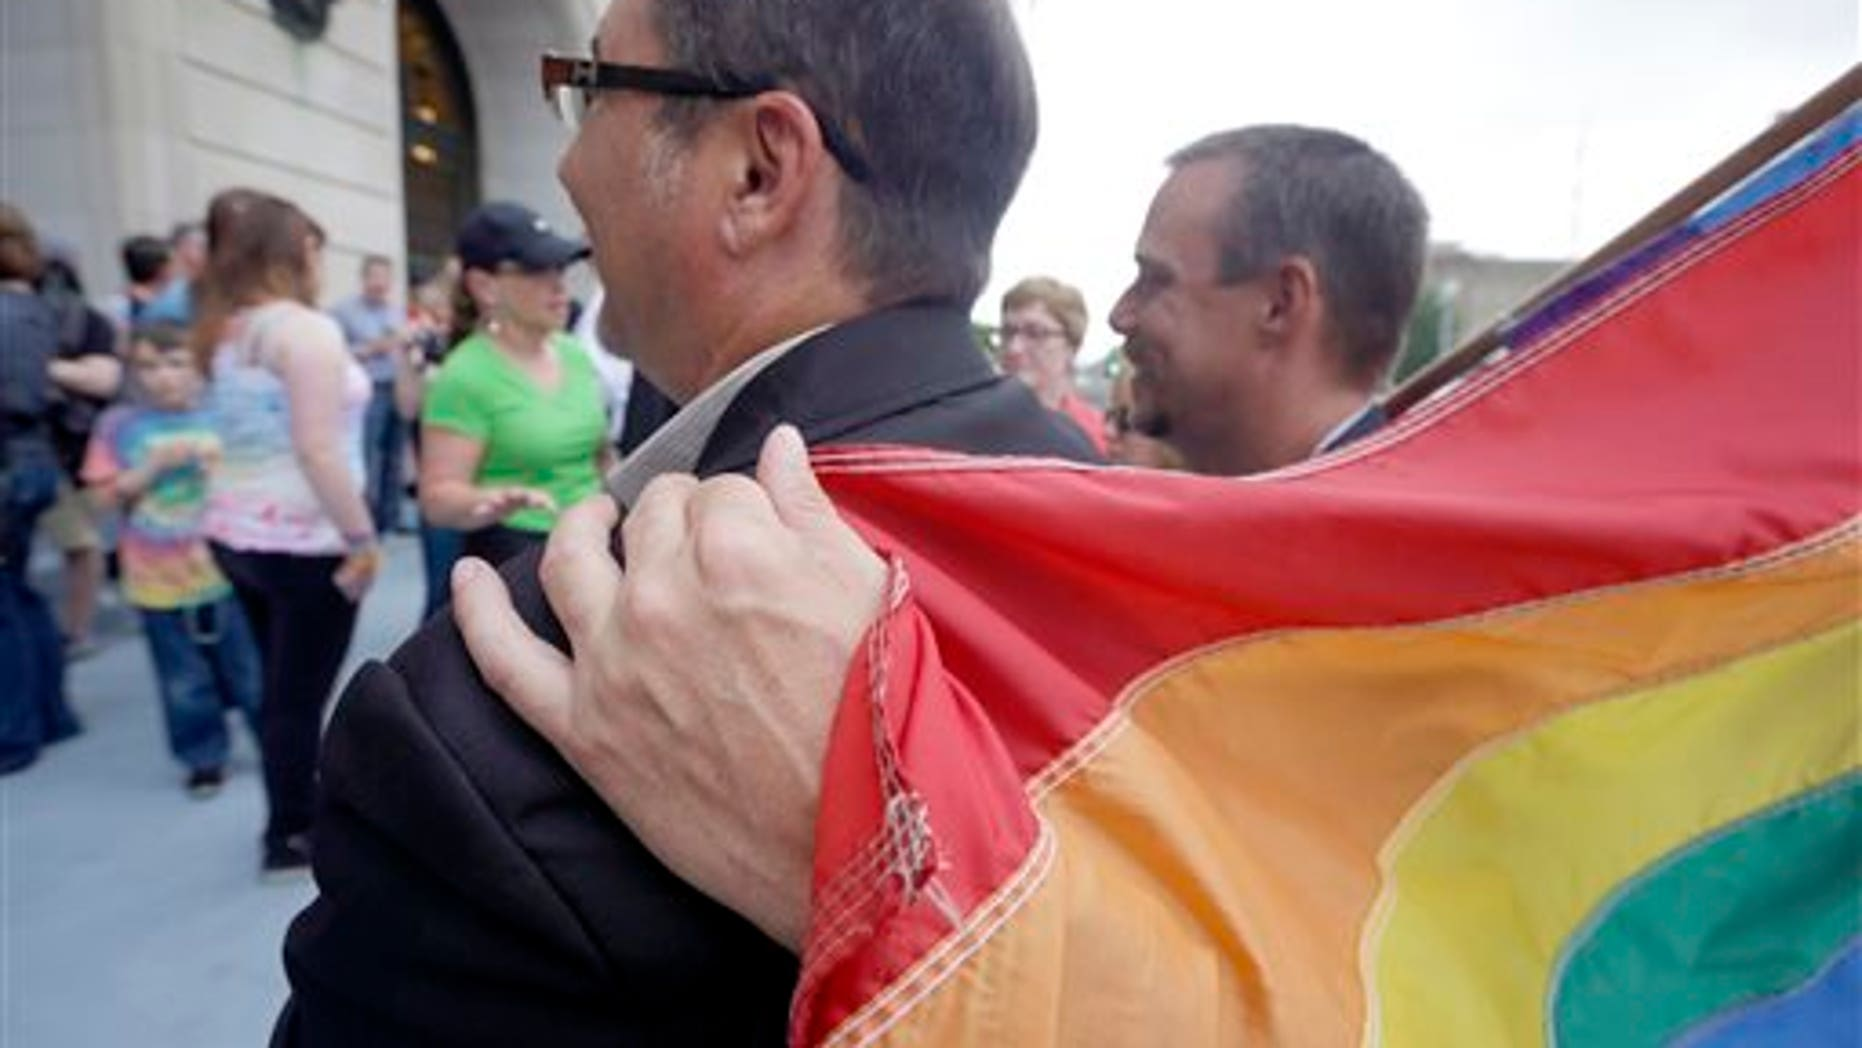 May 12, 2014: Shon DeArmon, right, puts his arm around his partner James Porter while holding a flag outside the Pulaski County Courthouse in Little Rock, Ark.